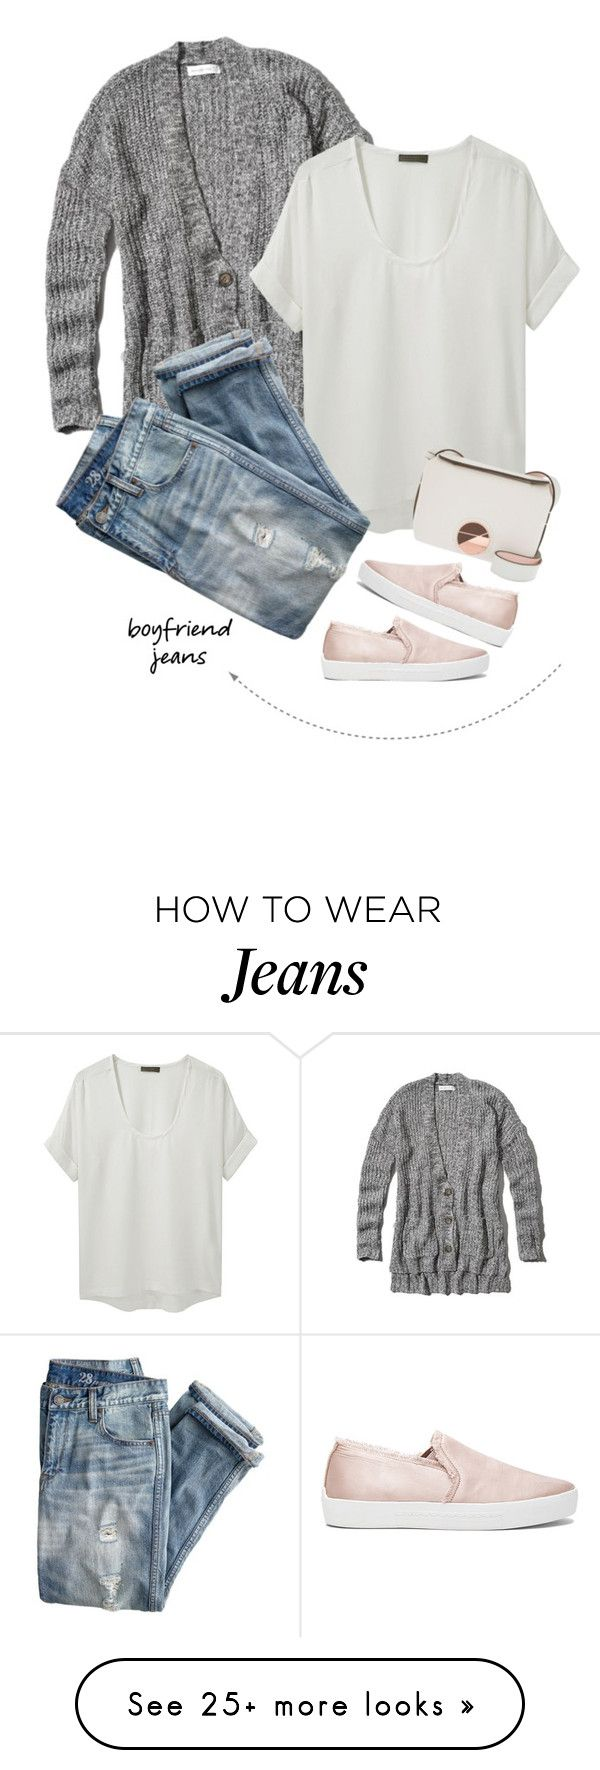 """boyfriend jeans"" by tawnee-tnt on Polyvore featuring Abercrombie & Fitch, Richard Chai Love, J.Crew, Joie, Calvin Klein and boyfriendjeans"